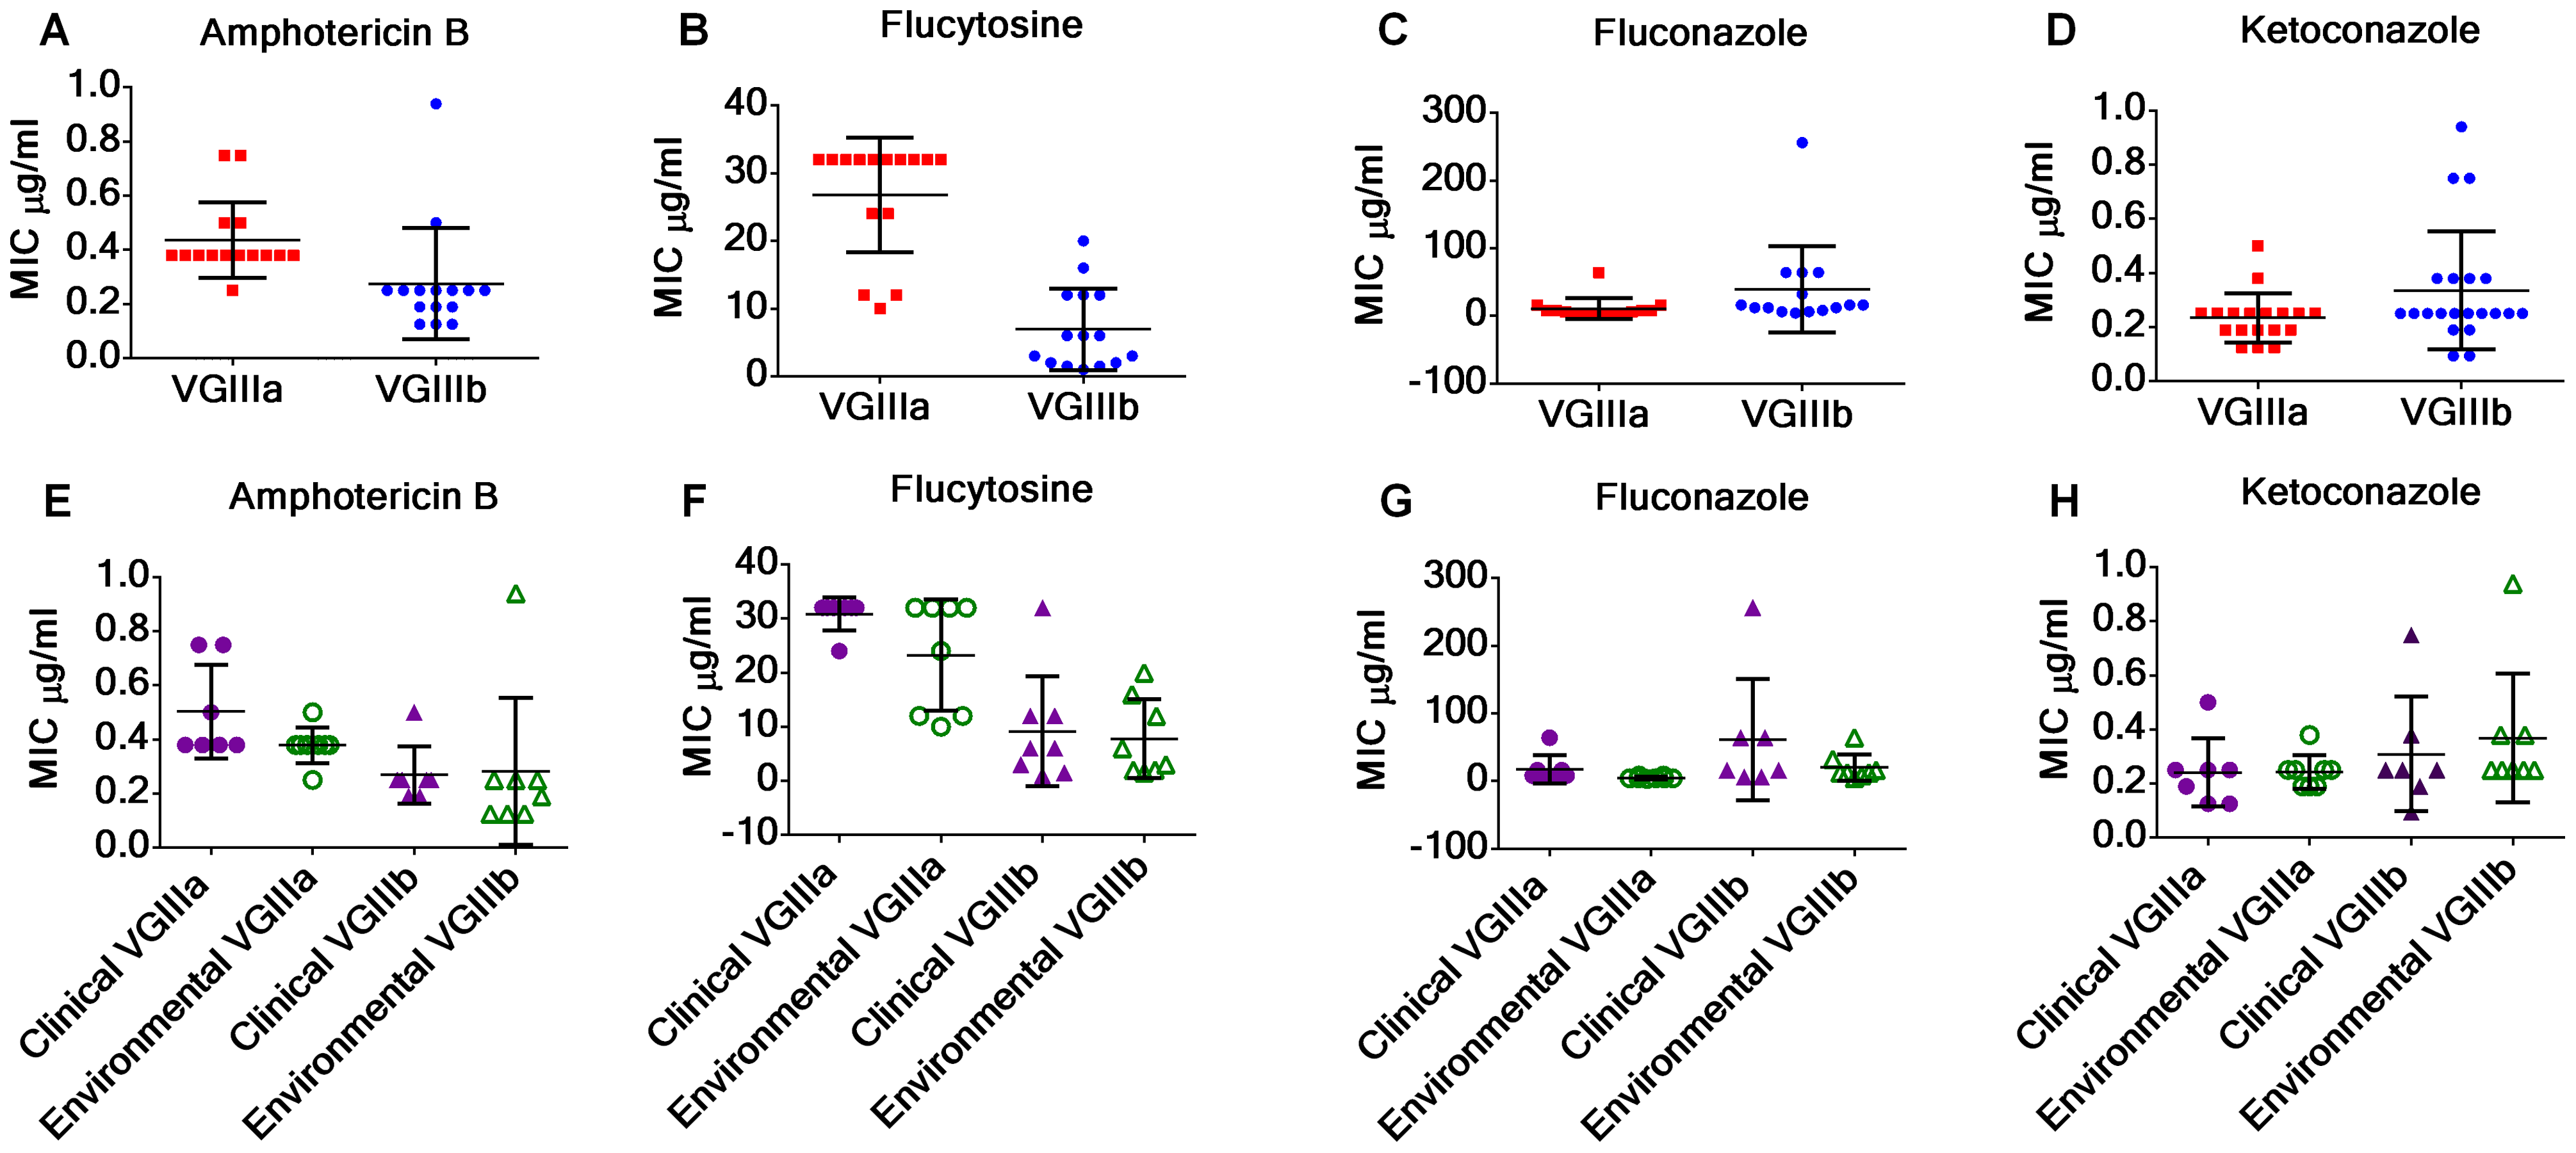 <i>C. gattii</i> VGIIIb isolates display higher antifungal susceptibility values to Amphotericin B and flucytosine in contrast to VGIIIa isolates.